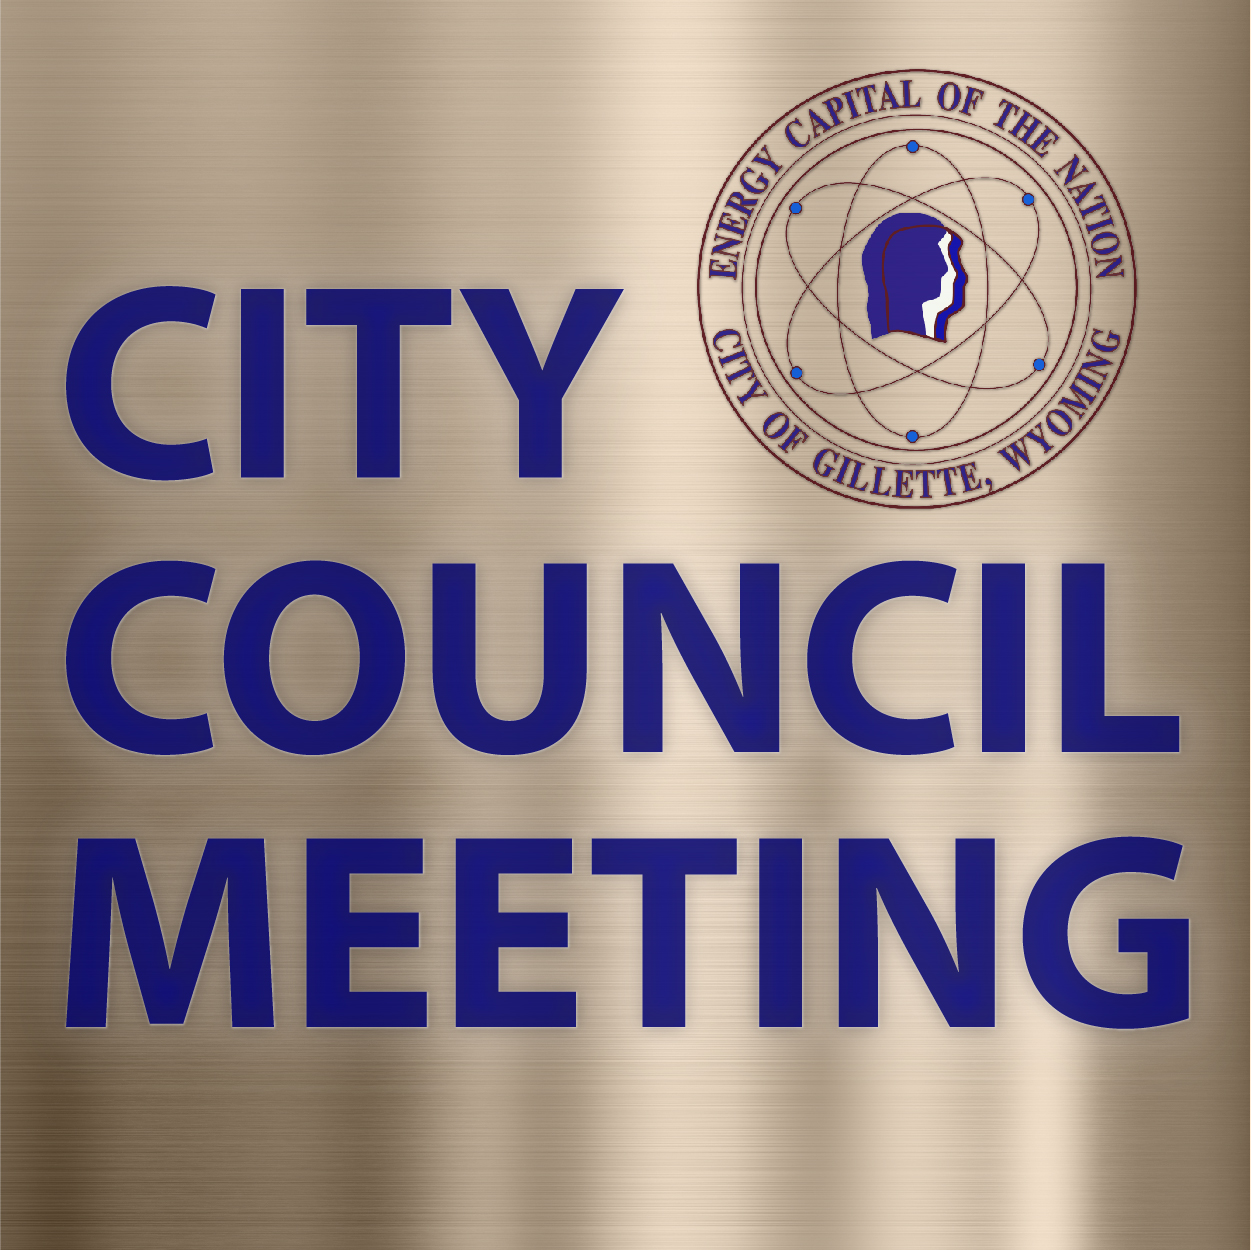 City Council Meeting - August 4th, 2020